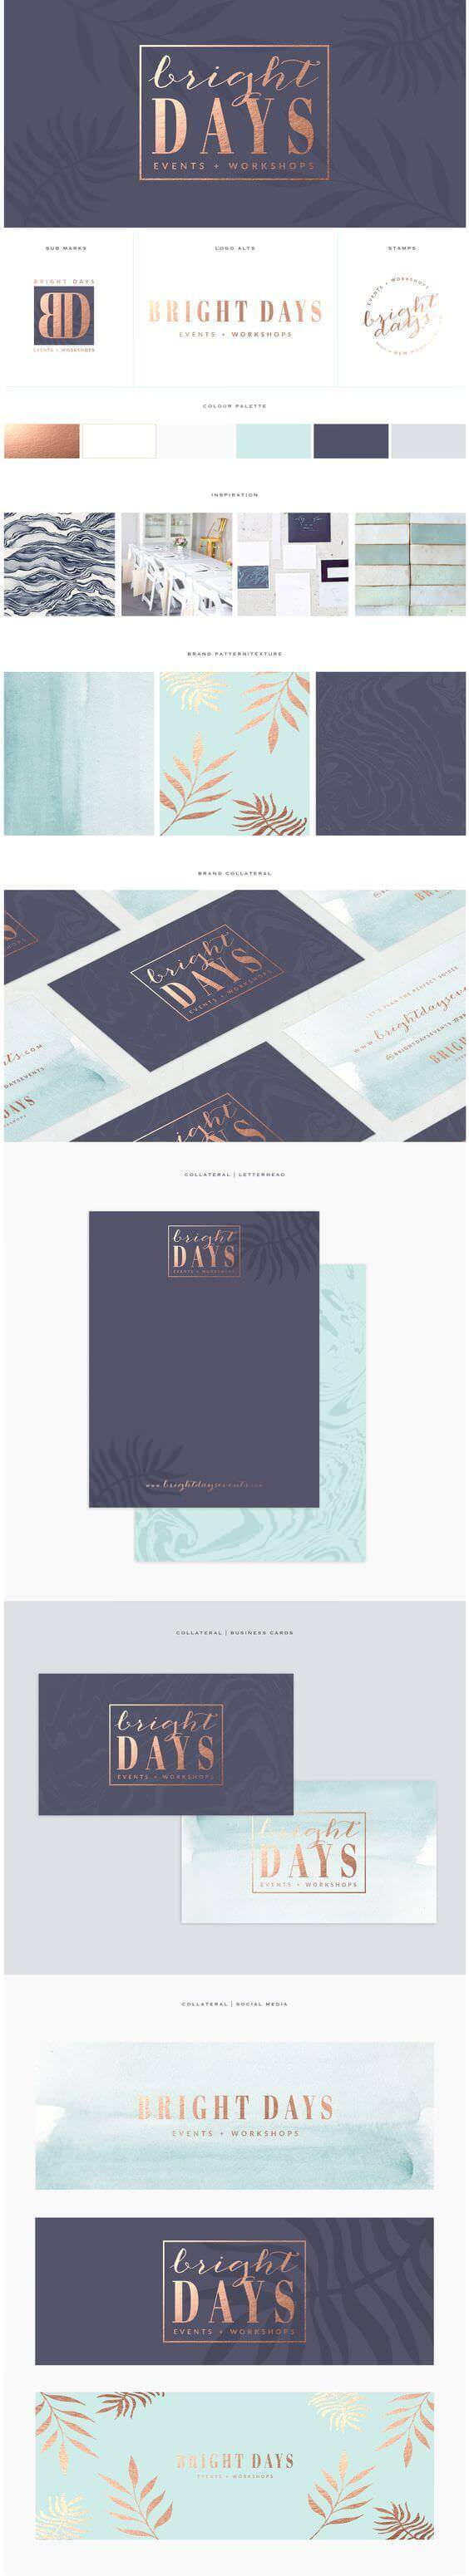 Bright Days brand board by Brand Me Beautiful